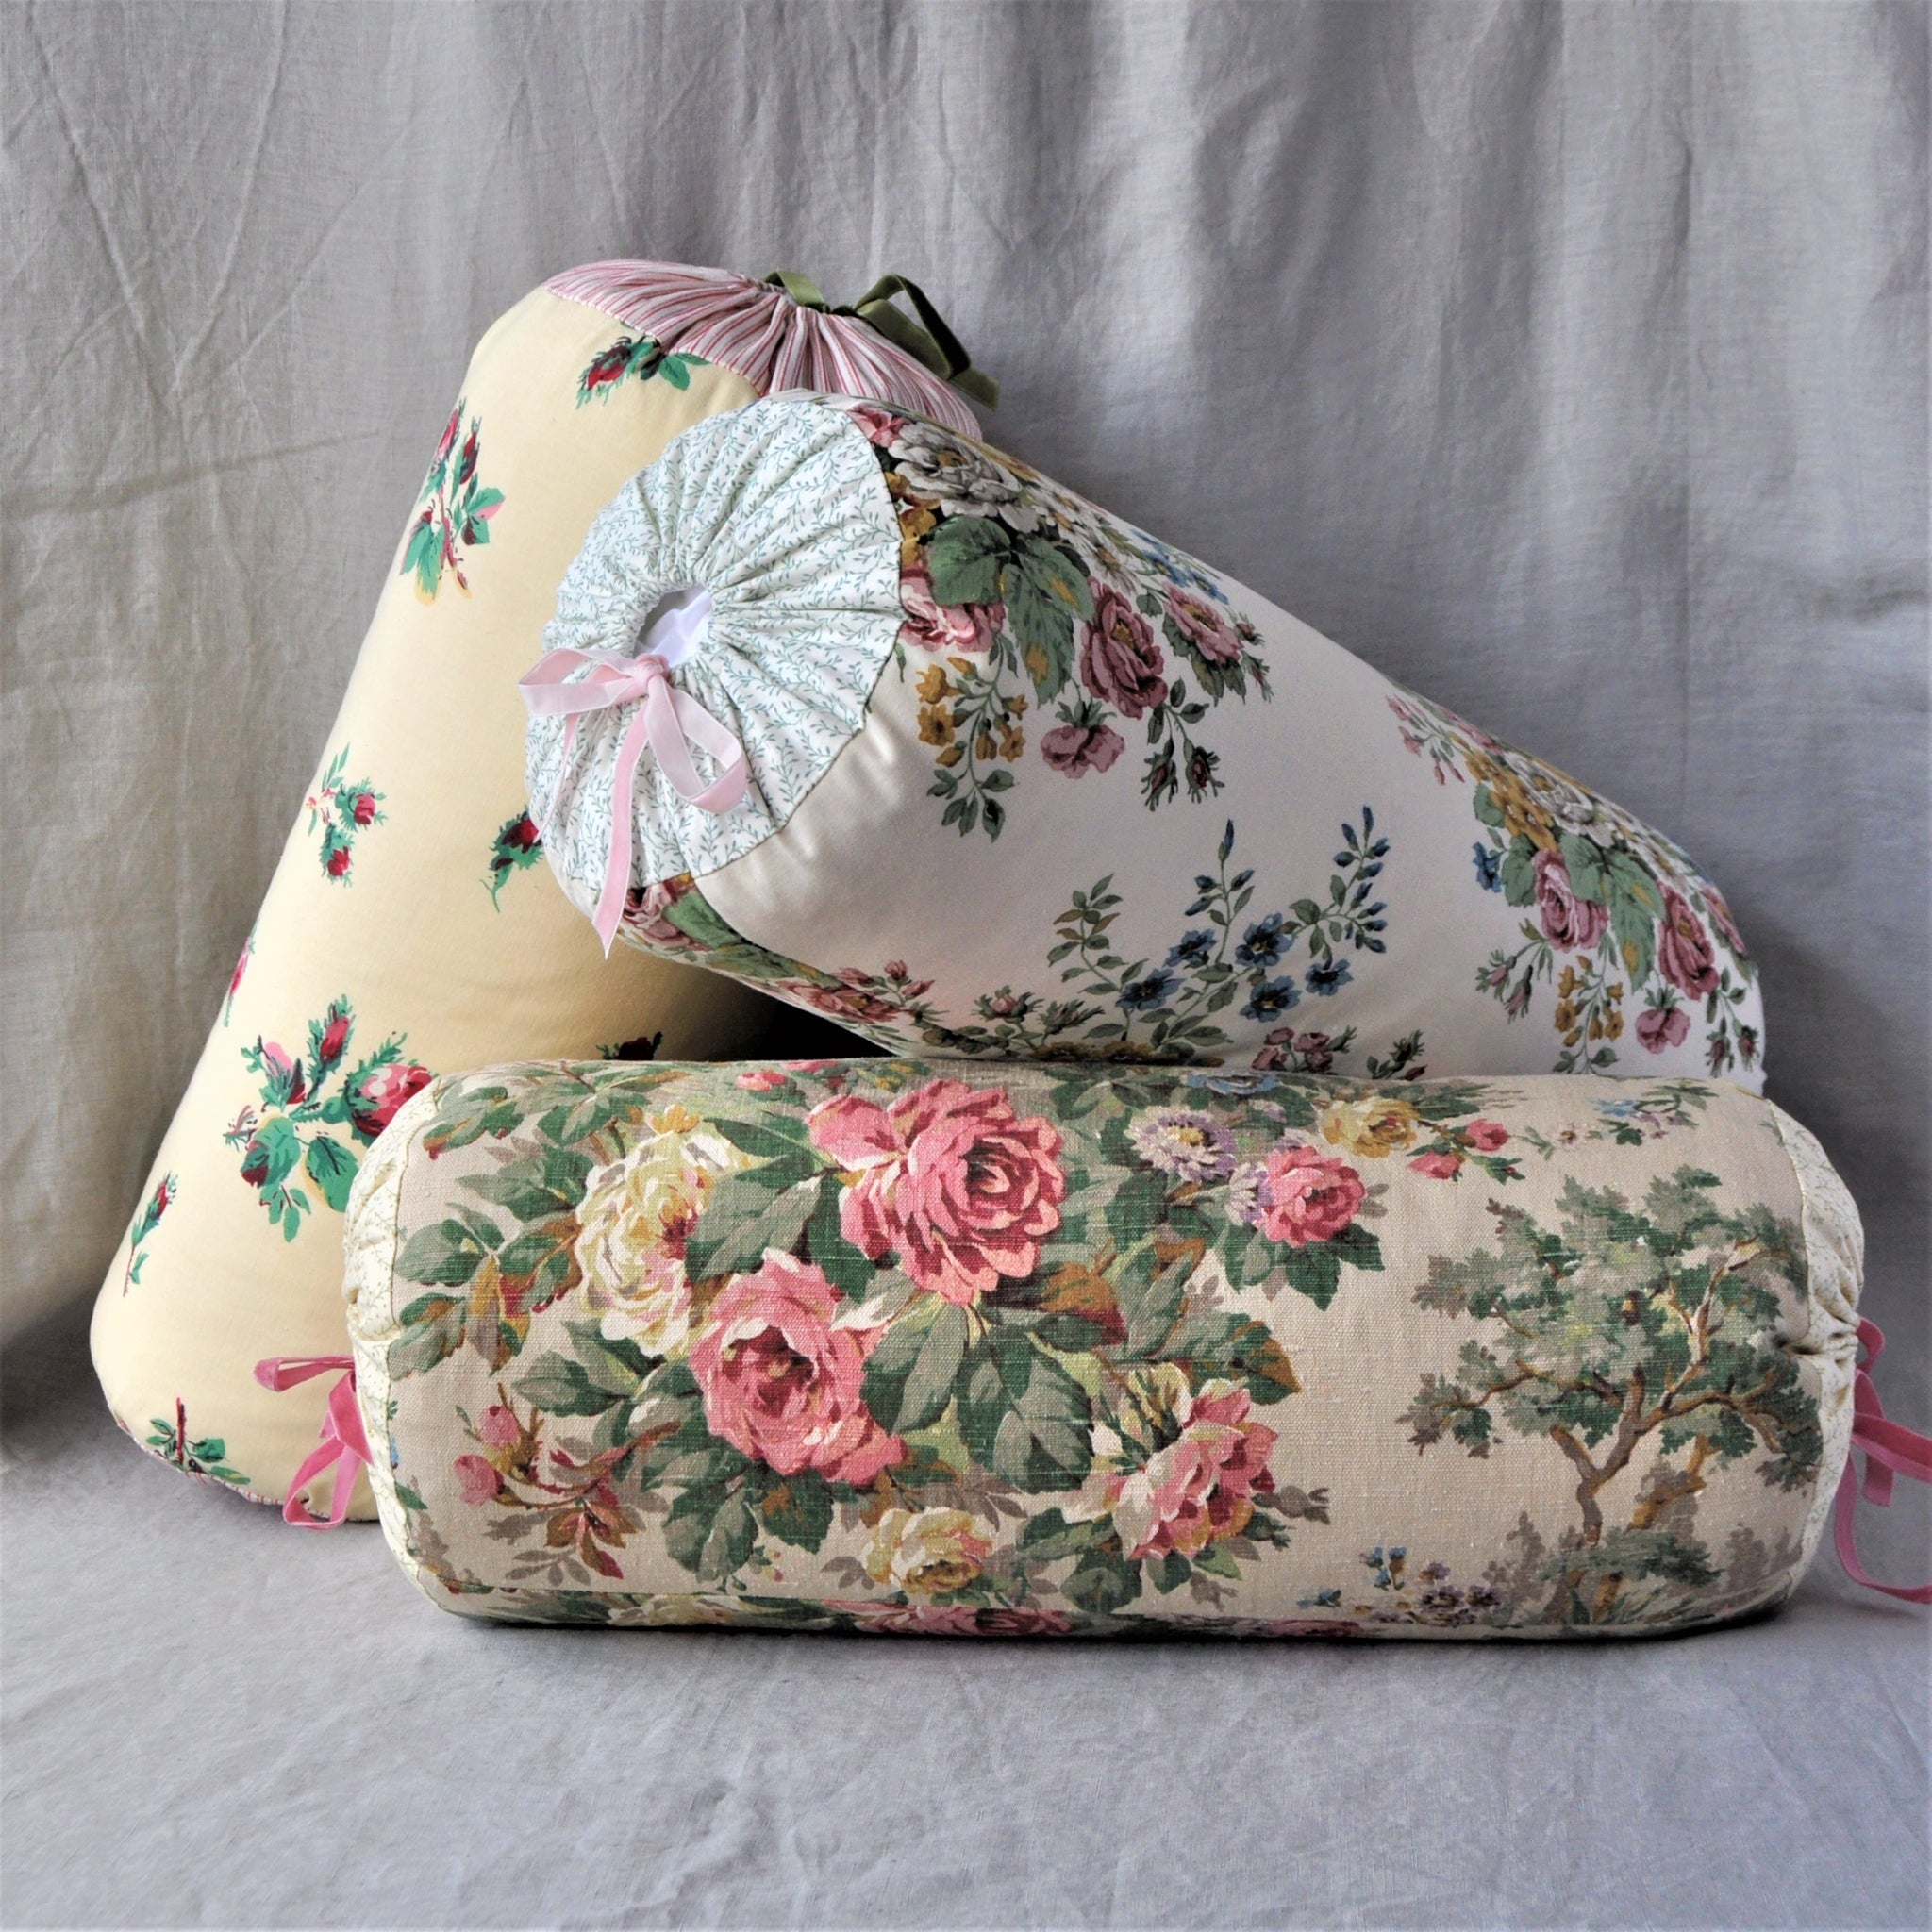 Bolster Cushion In Off White Vintage Floral 'Dallant' Fabric